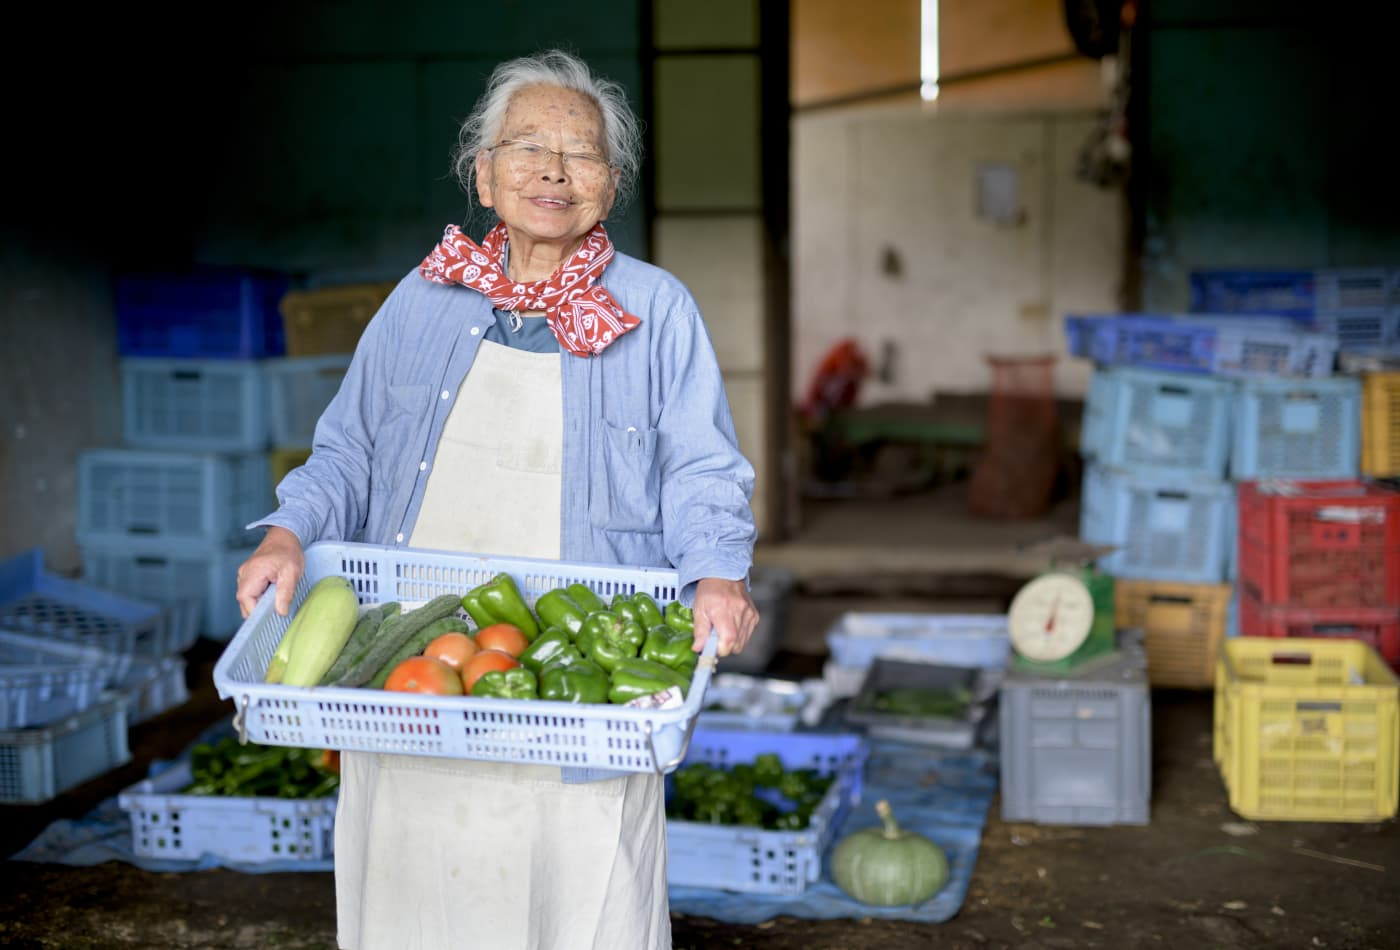 This Japanese 80% diet rule can help you live a longer life, says longevity researcher